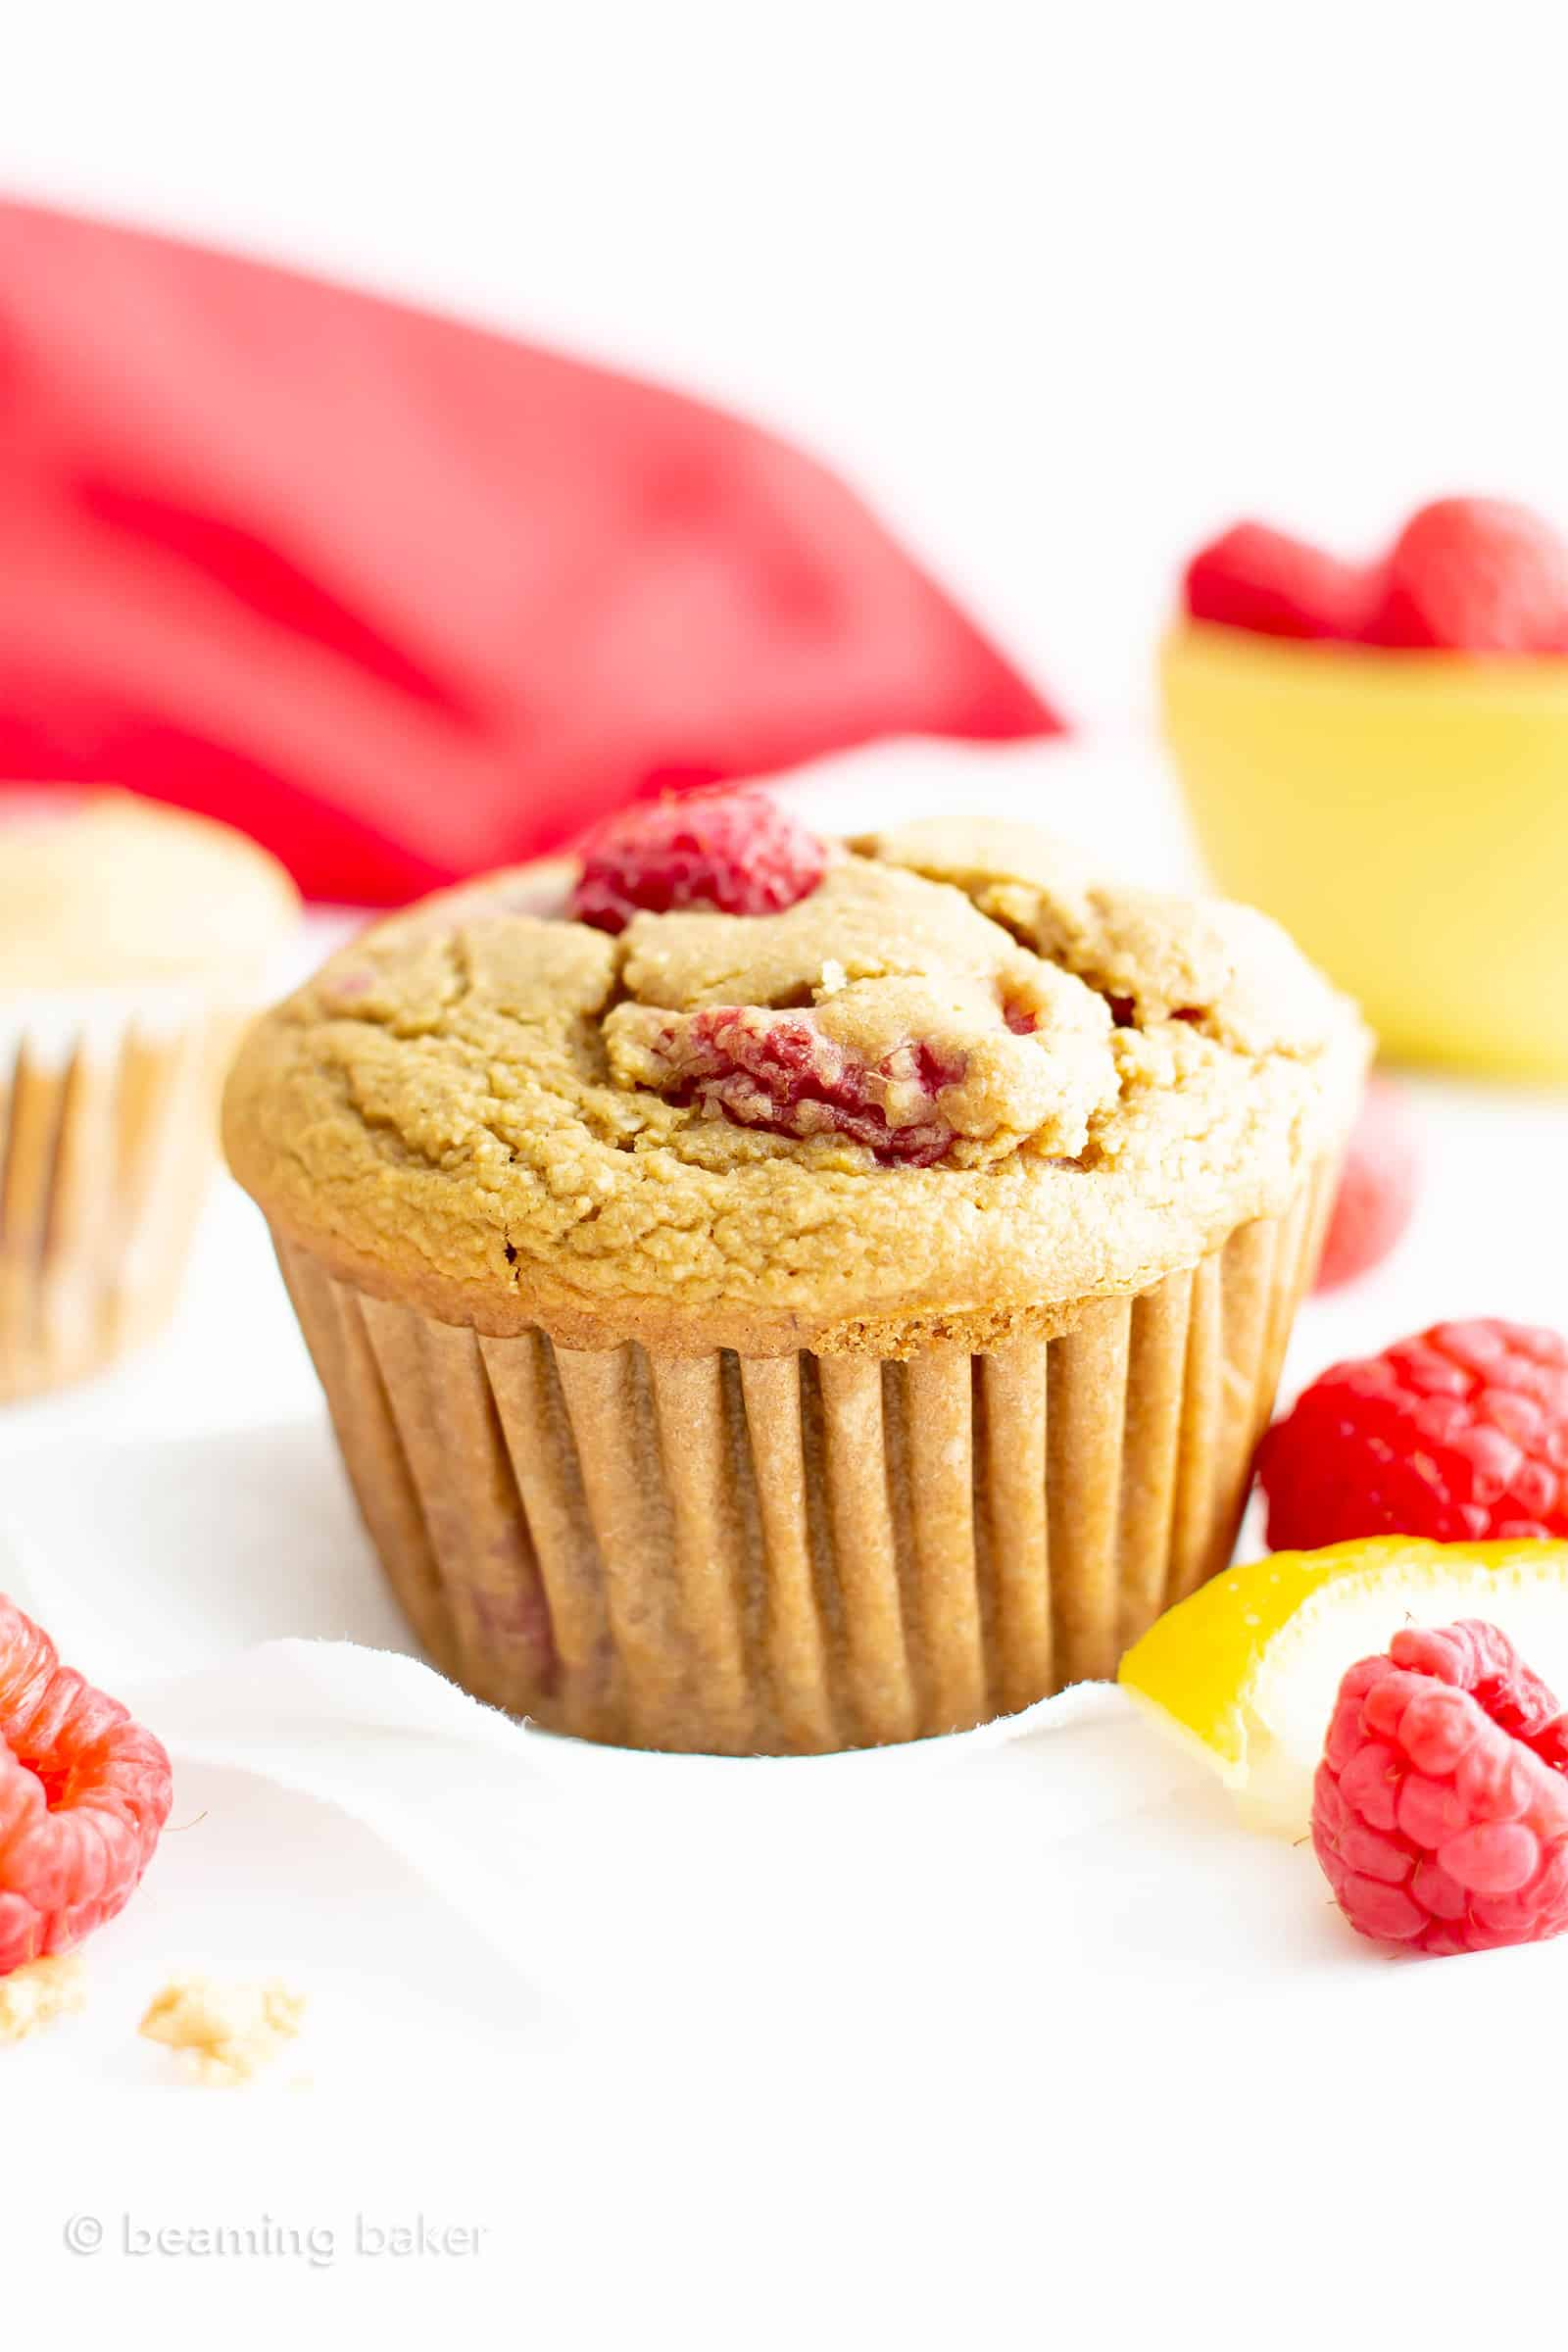 Healthy Lemon Raspberry Muffins Recipe (GF, V): this moist 'n easy lemon raspberry muffins recipe is gluten free & vegan! A healthy lemon raspberry muffins recipe that's bursting with raspberry flavor! #GlutenFree #Muffins #Healthy #Vegan #Lemon #Raspberry | Recipe at BeamingBaker.com